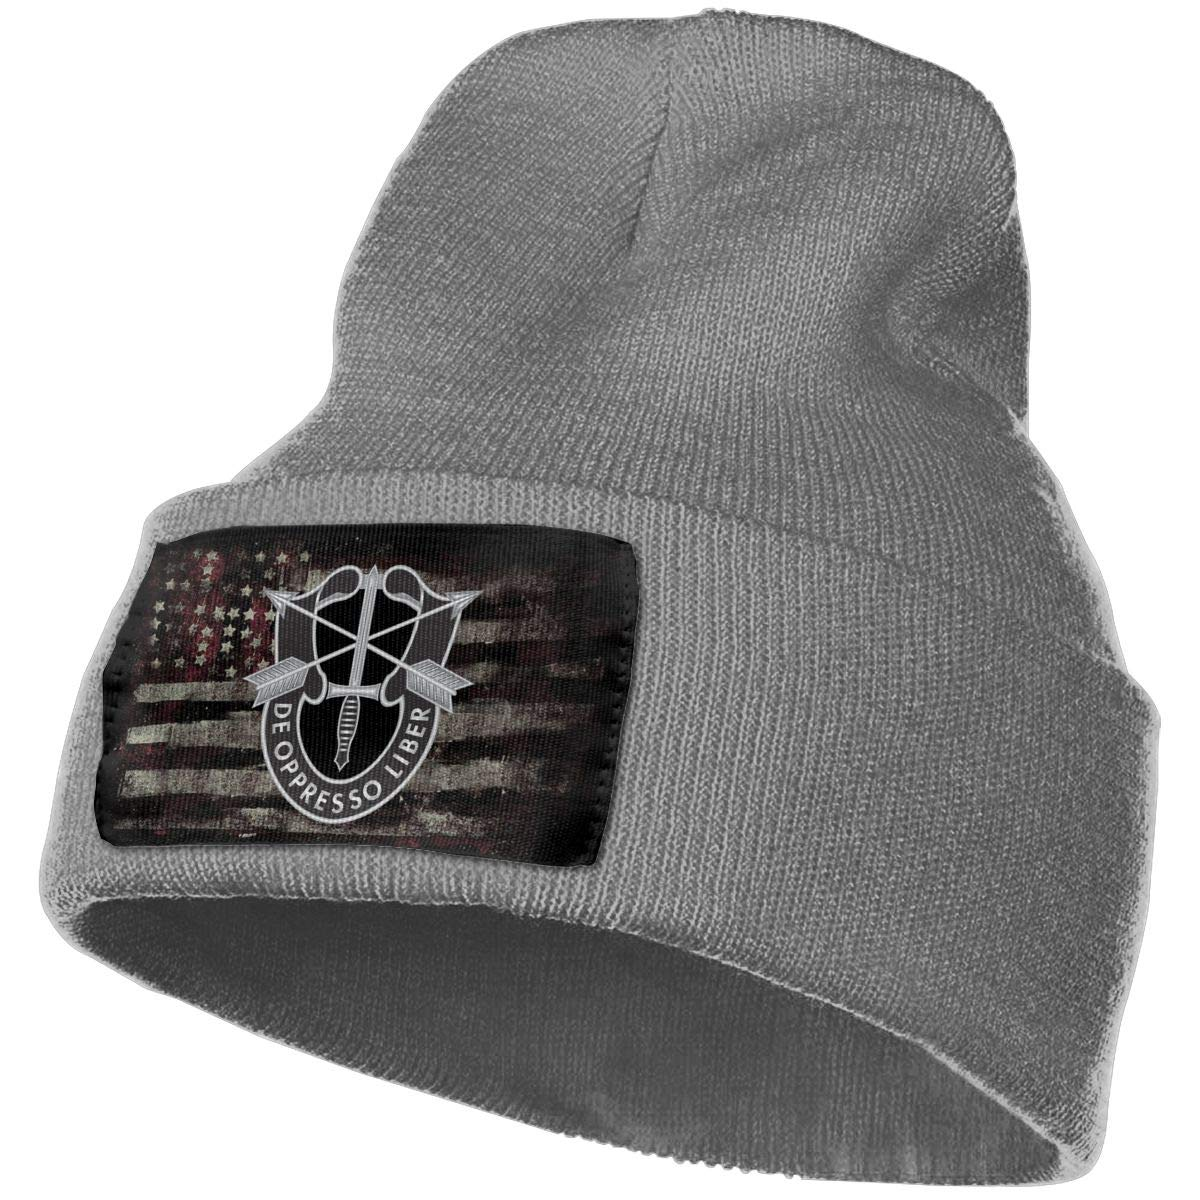 Special Forces Brigade Unit Crest Mens Beanie Cap Skull Cap Winter Warm Knitting Hats.